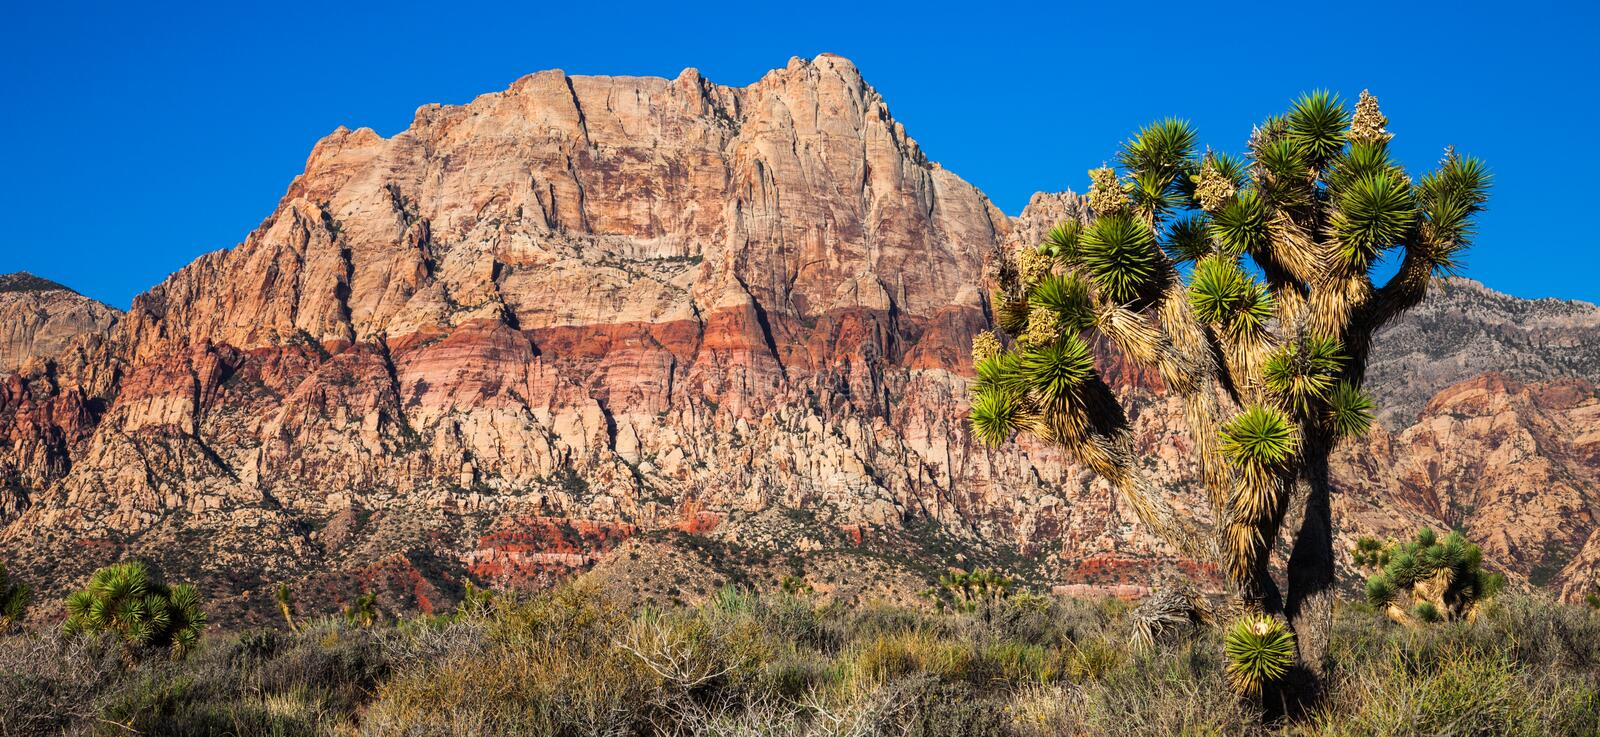 Red Rock Canyon Conservation Area stock photos